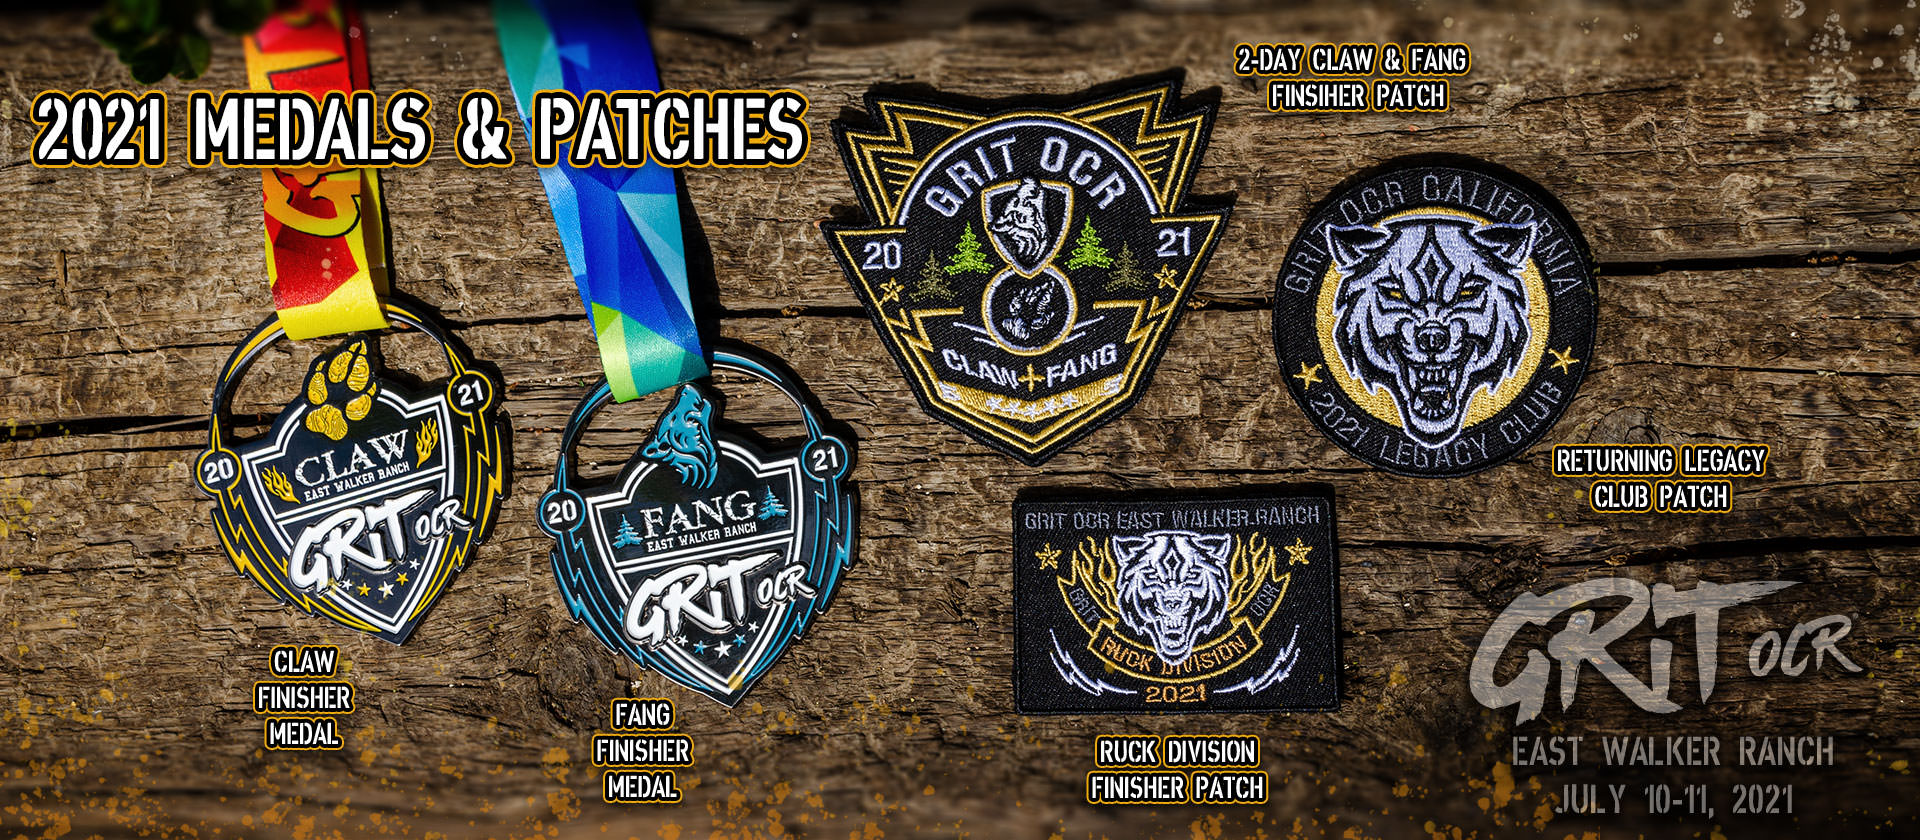 2021 Grit OCR Medals & Patches